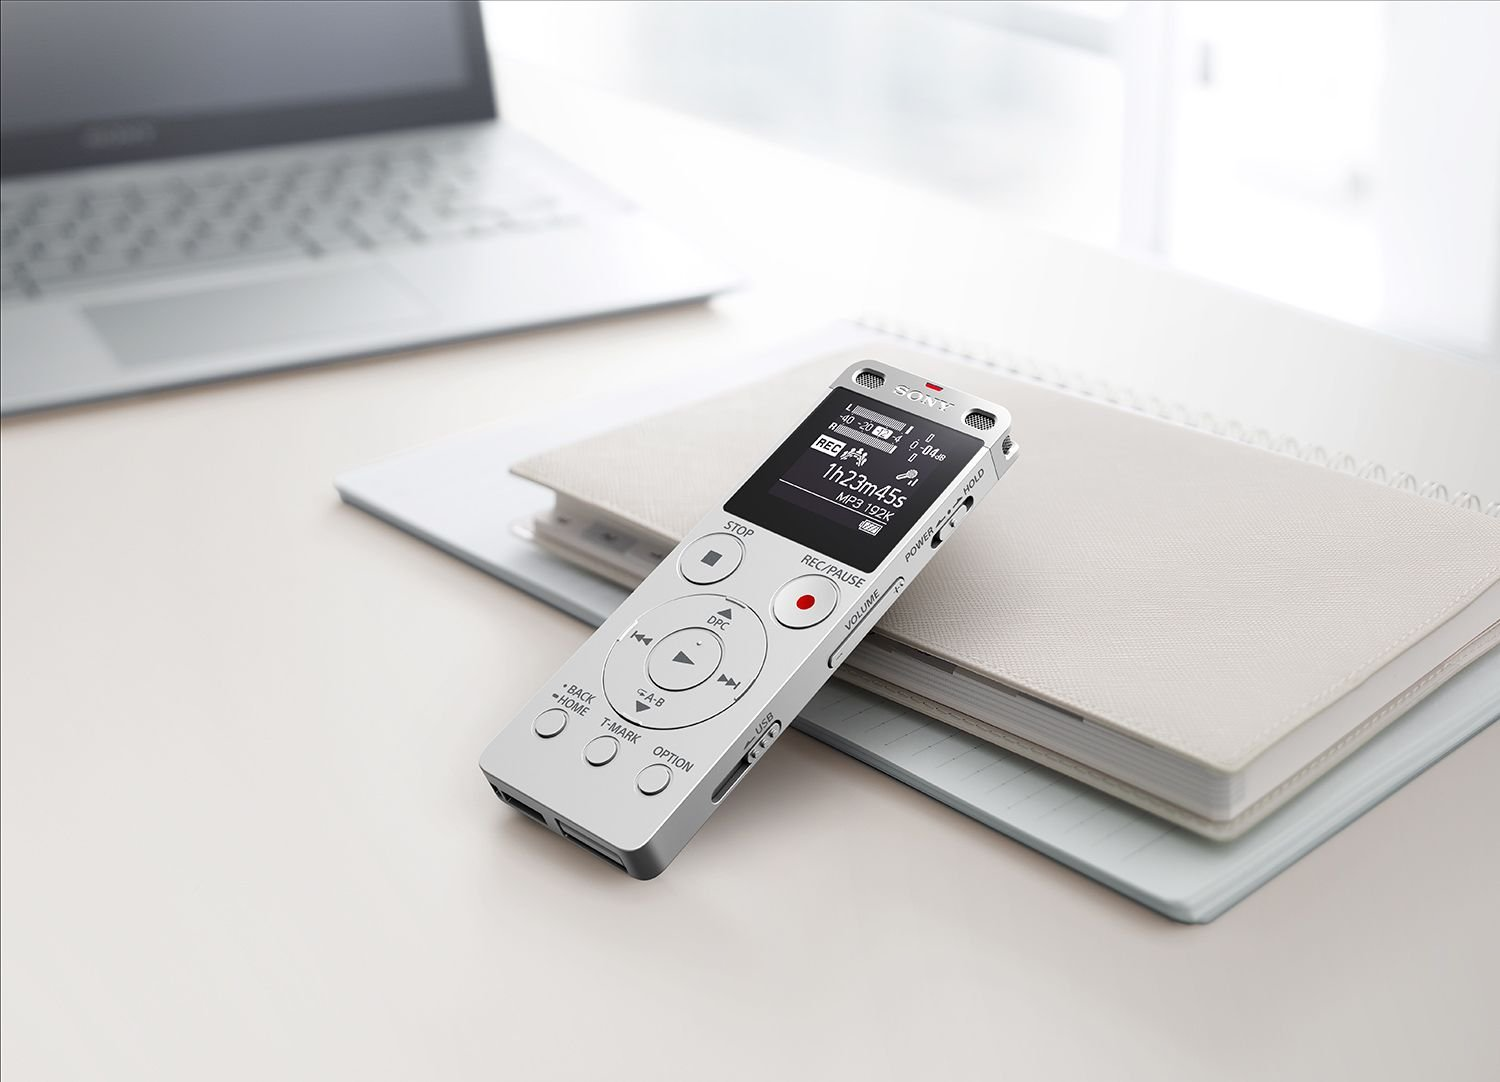 sony ux560. sony icd-ux560f digital voice recorder with built-in: amazon.in: electronics ux560 x